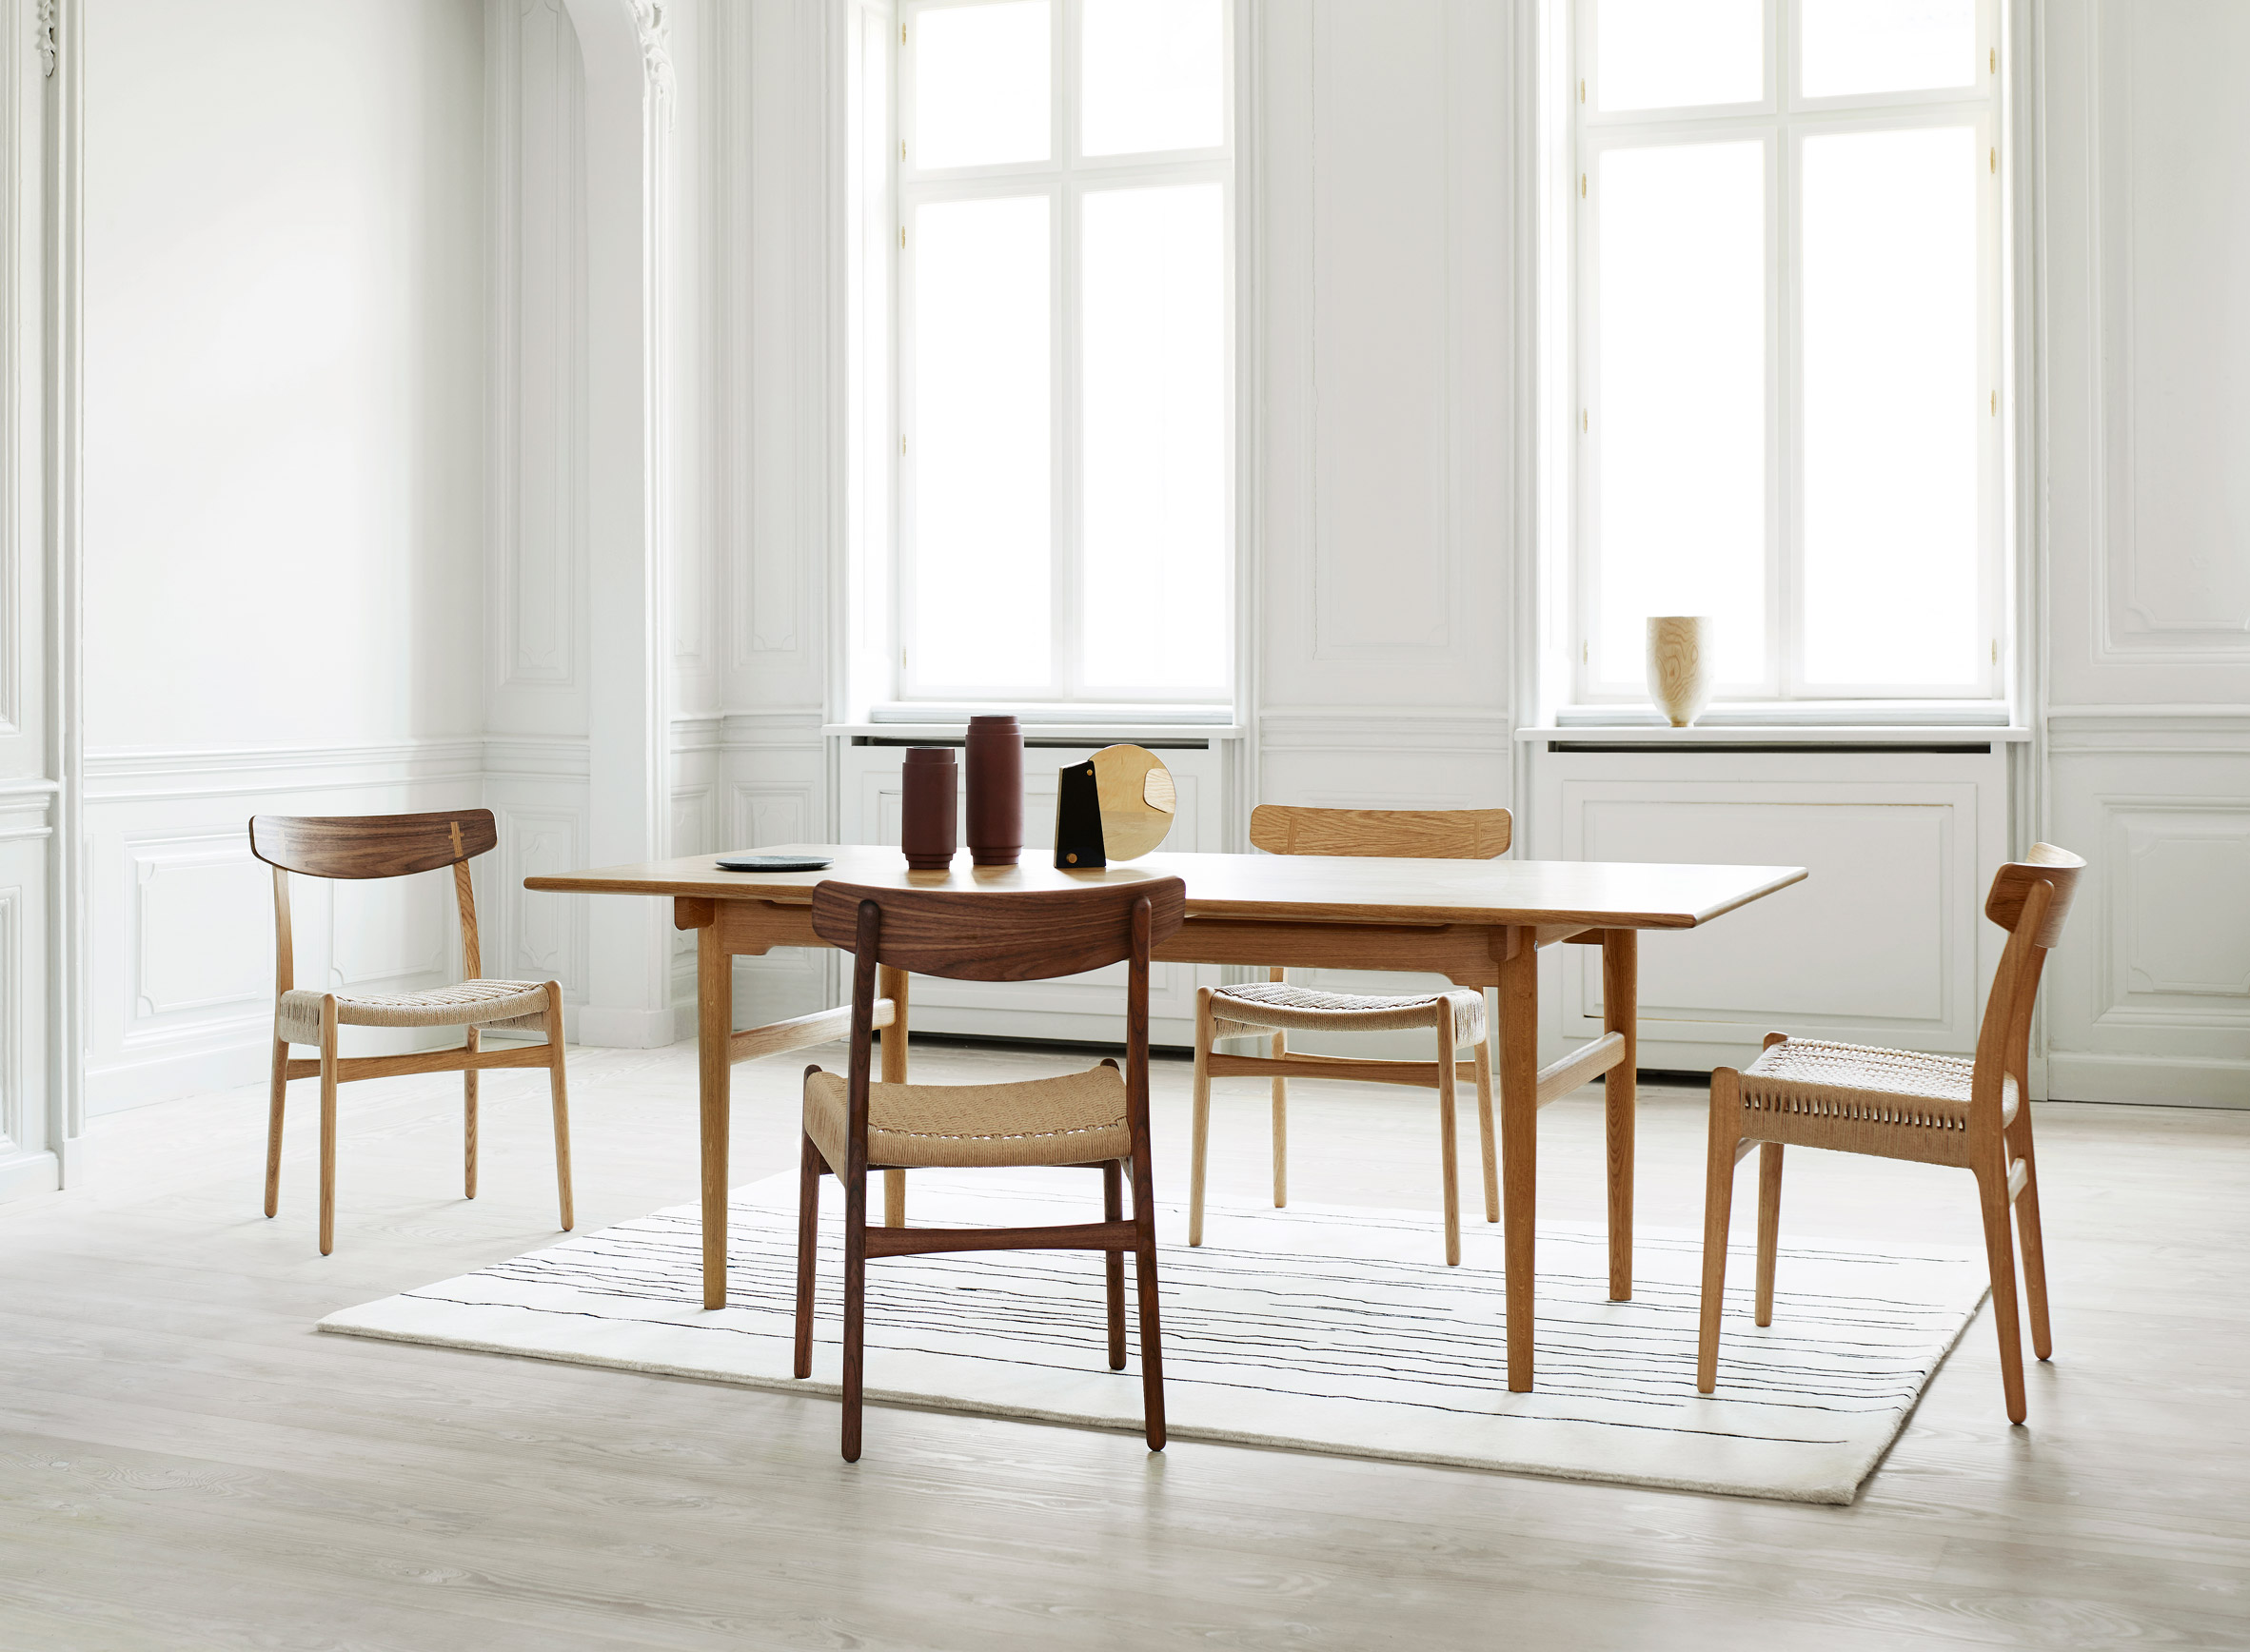 hans j wegner collection Carl Hansen & Son Releases Final Chair from Hans J Wegner Collection Carl Hansen Son Re Releases Final Chair from Hans J Wegner Collection 2